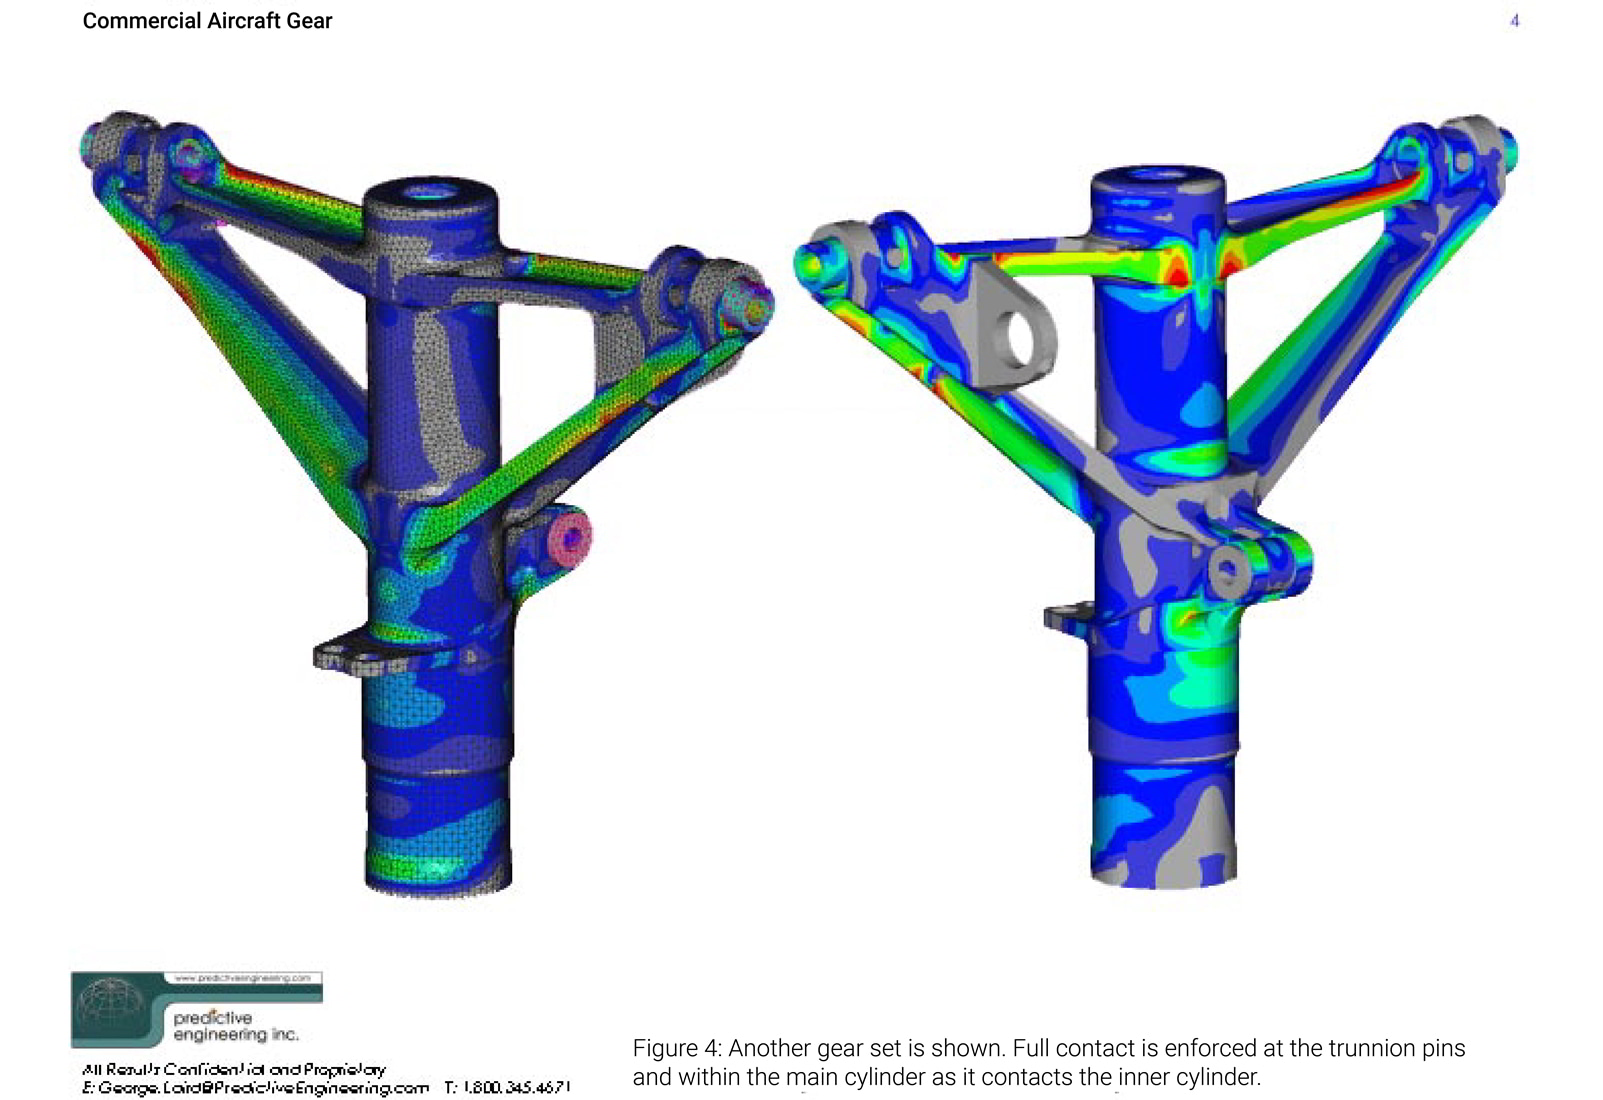 Another landing gear set is shown as mesh in Femap and analyzed in Nastran